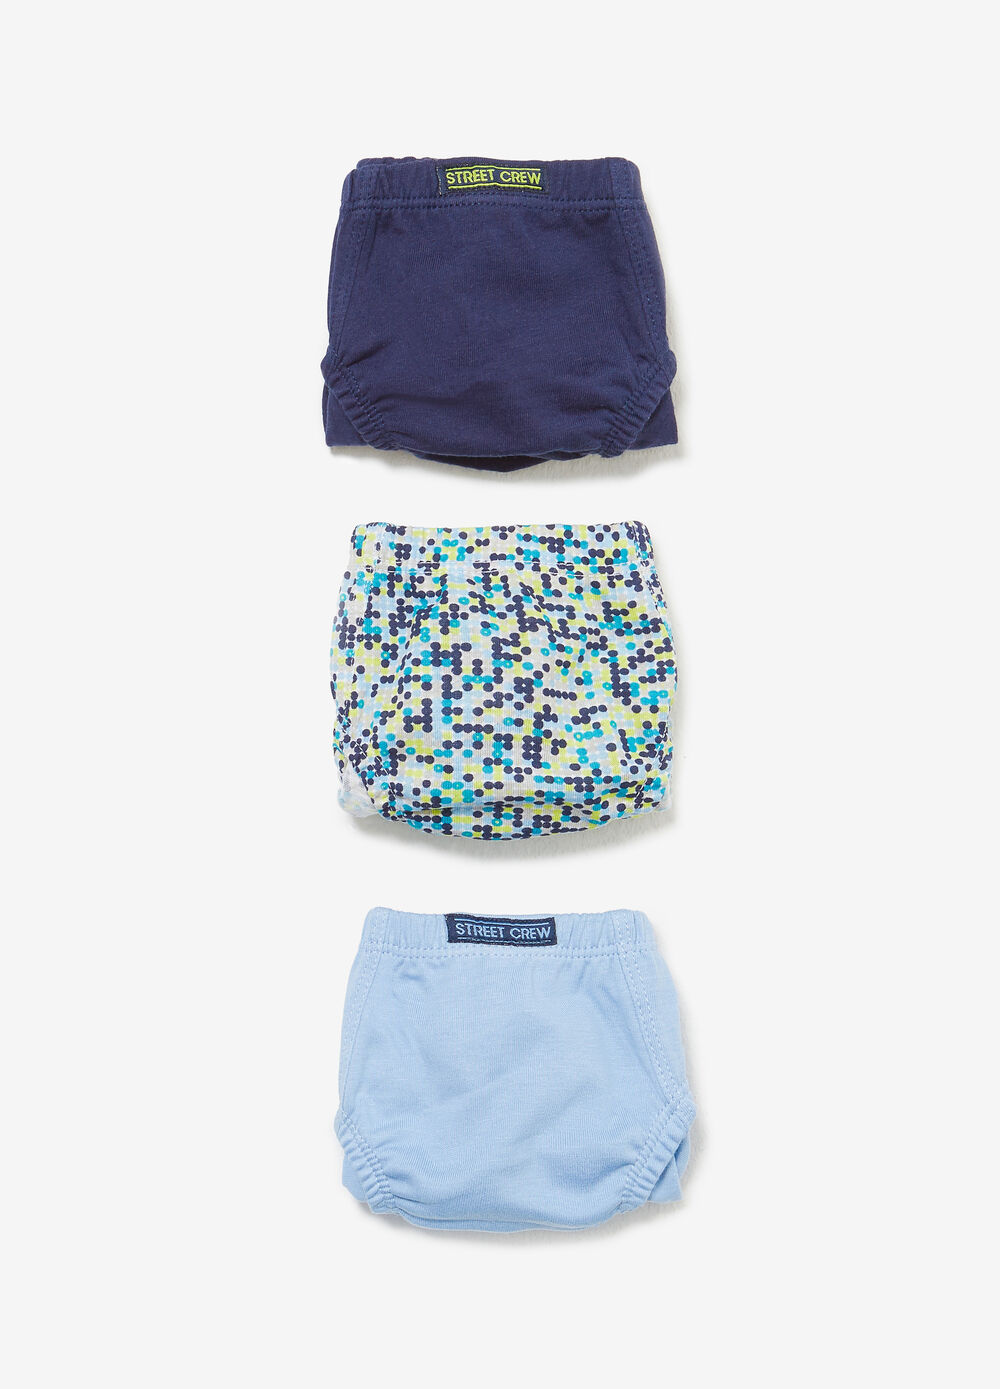 100% cotton briefs with geometric pattern